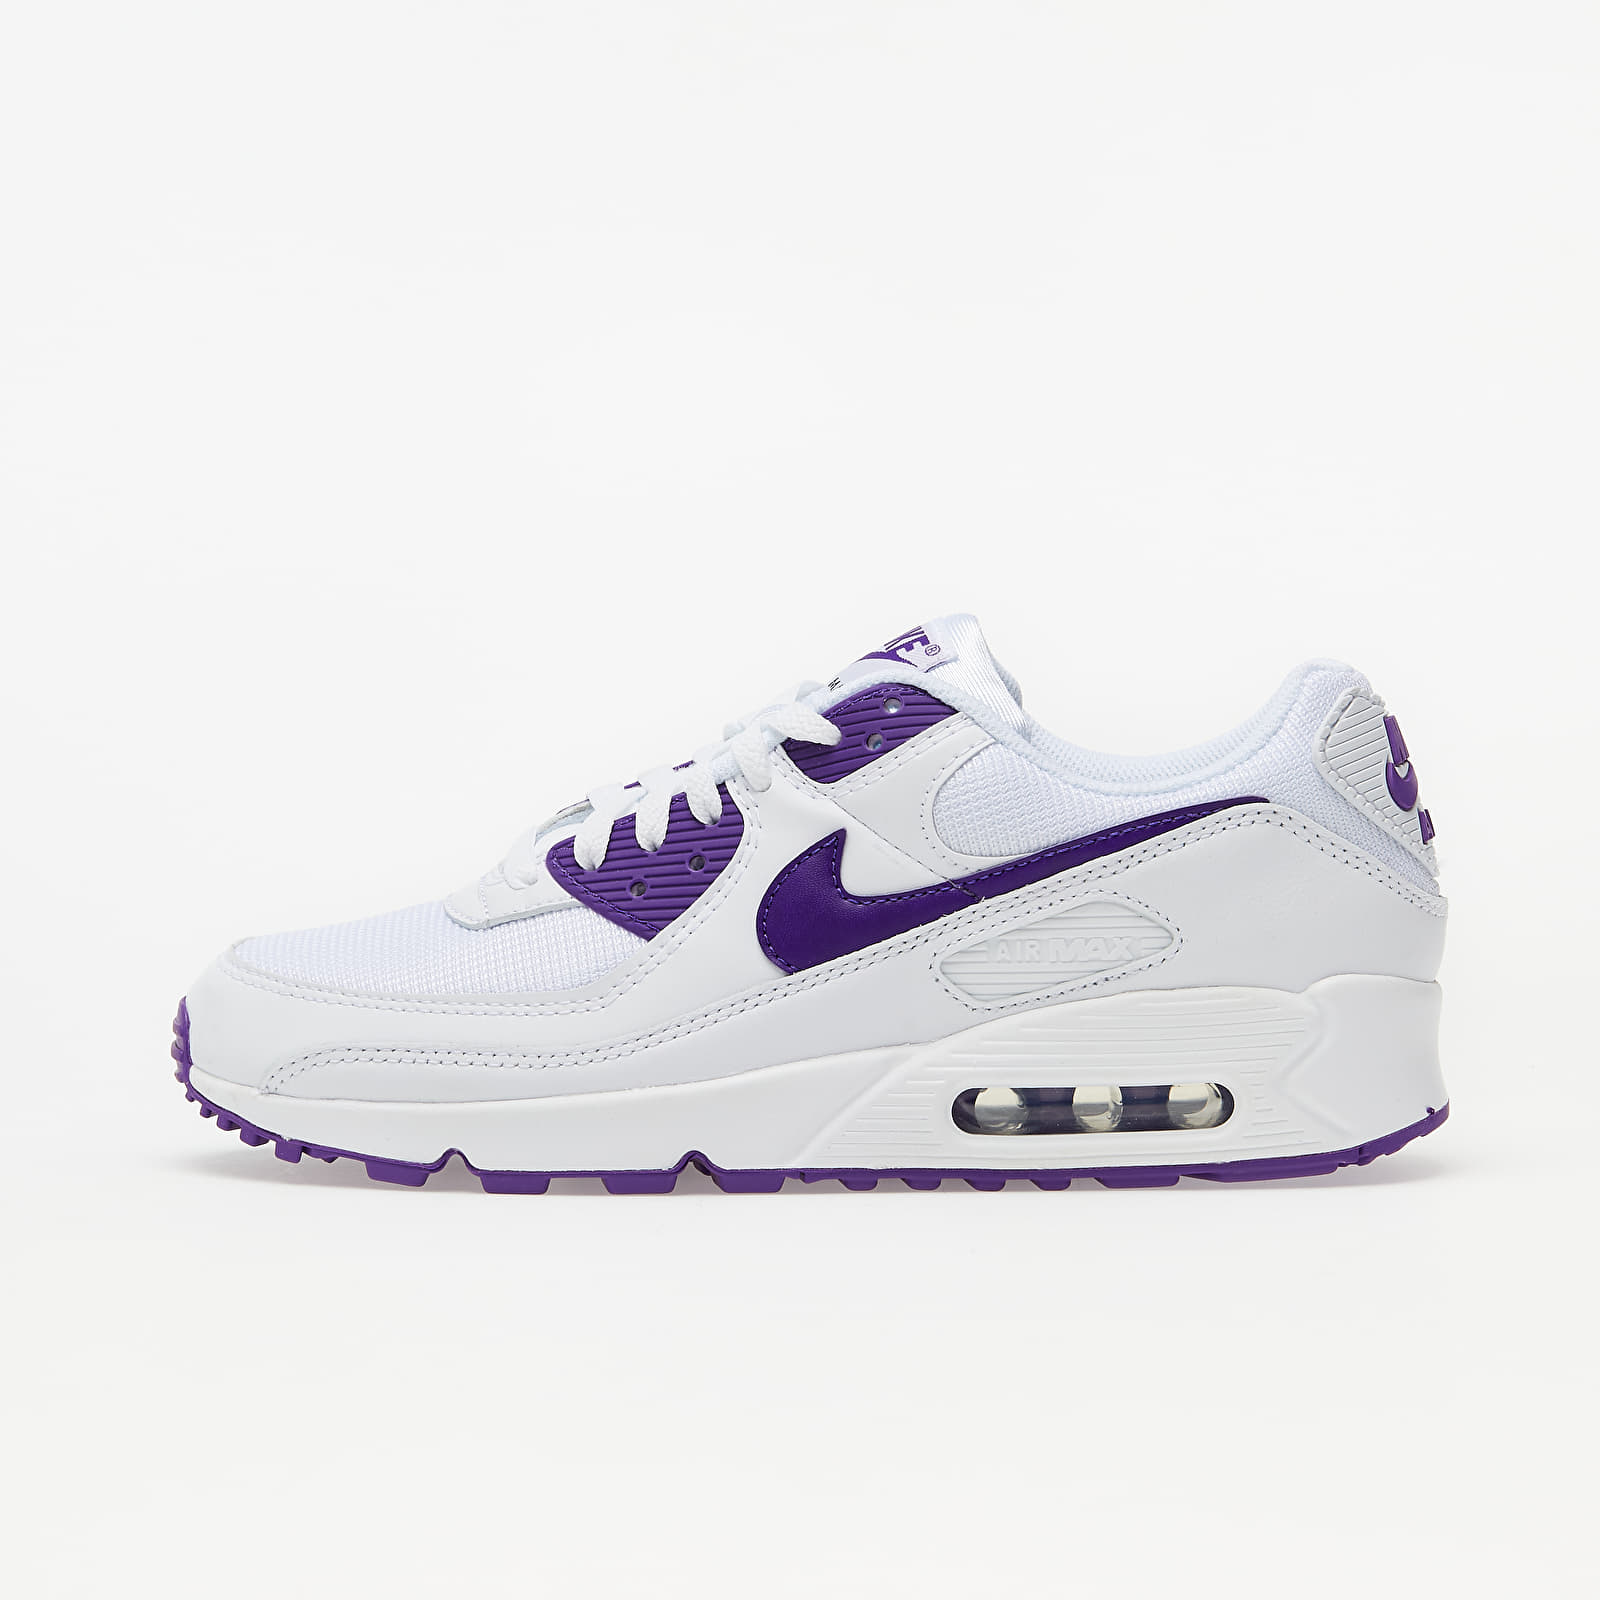 Nike Air Max 90 White/ Voltage Purple-Black EUR 41